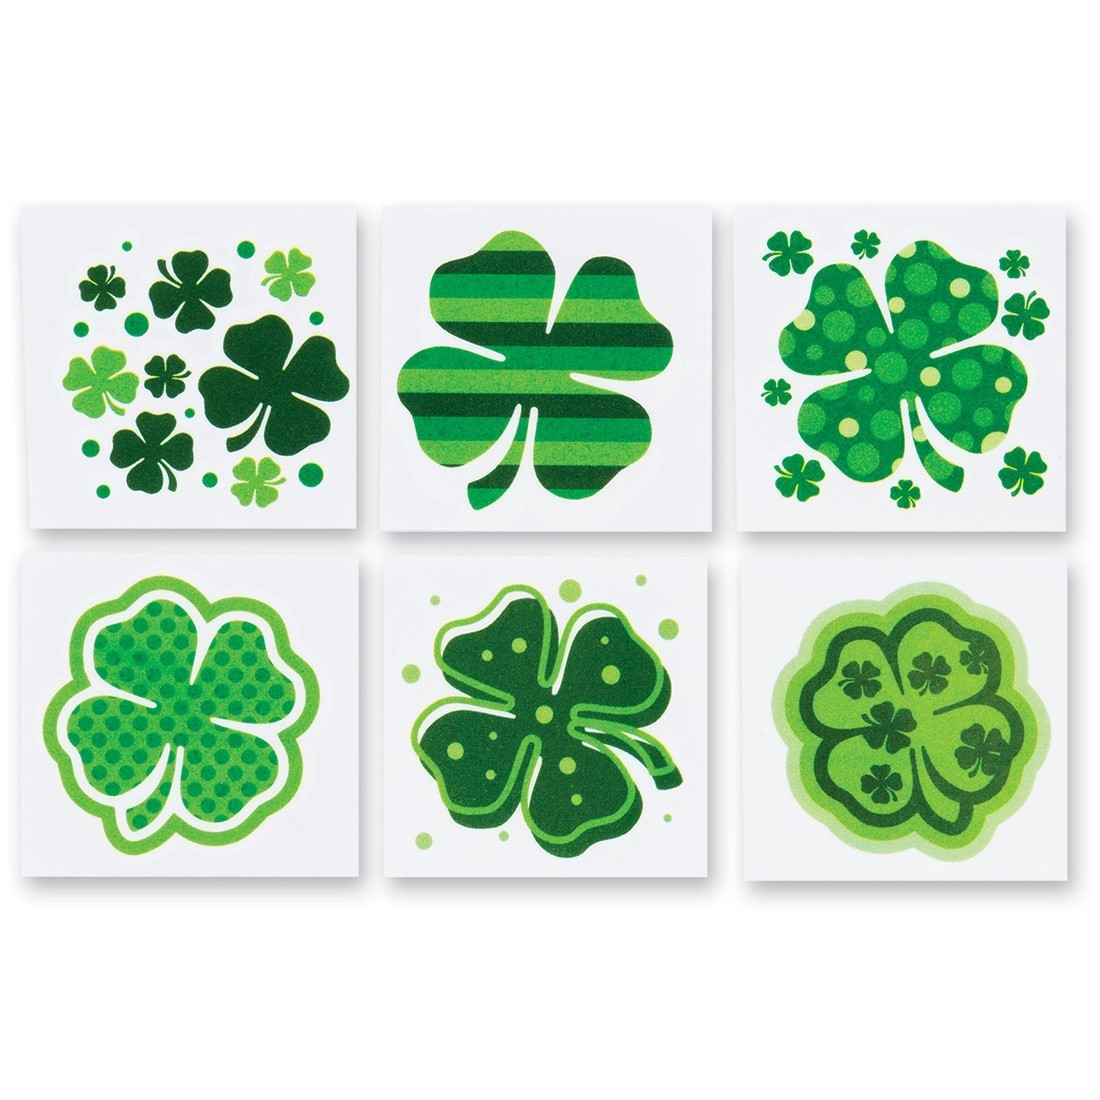 Shamrock Tattoos [image]